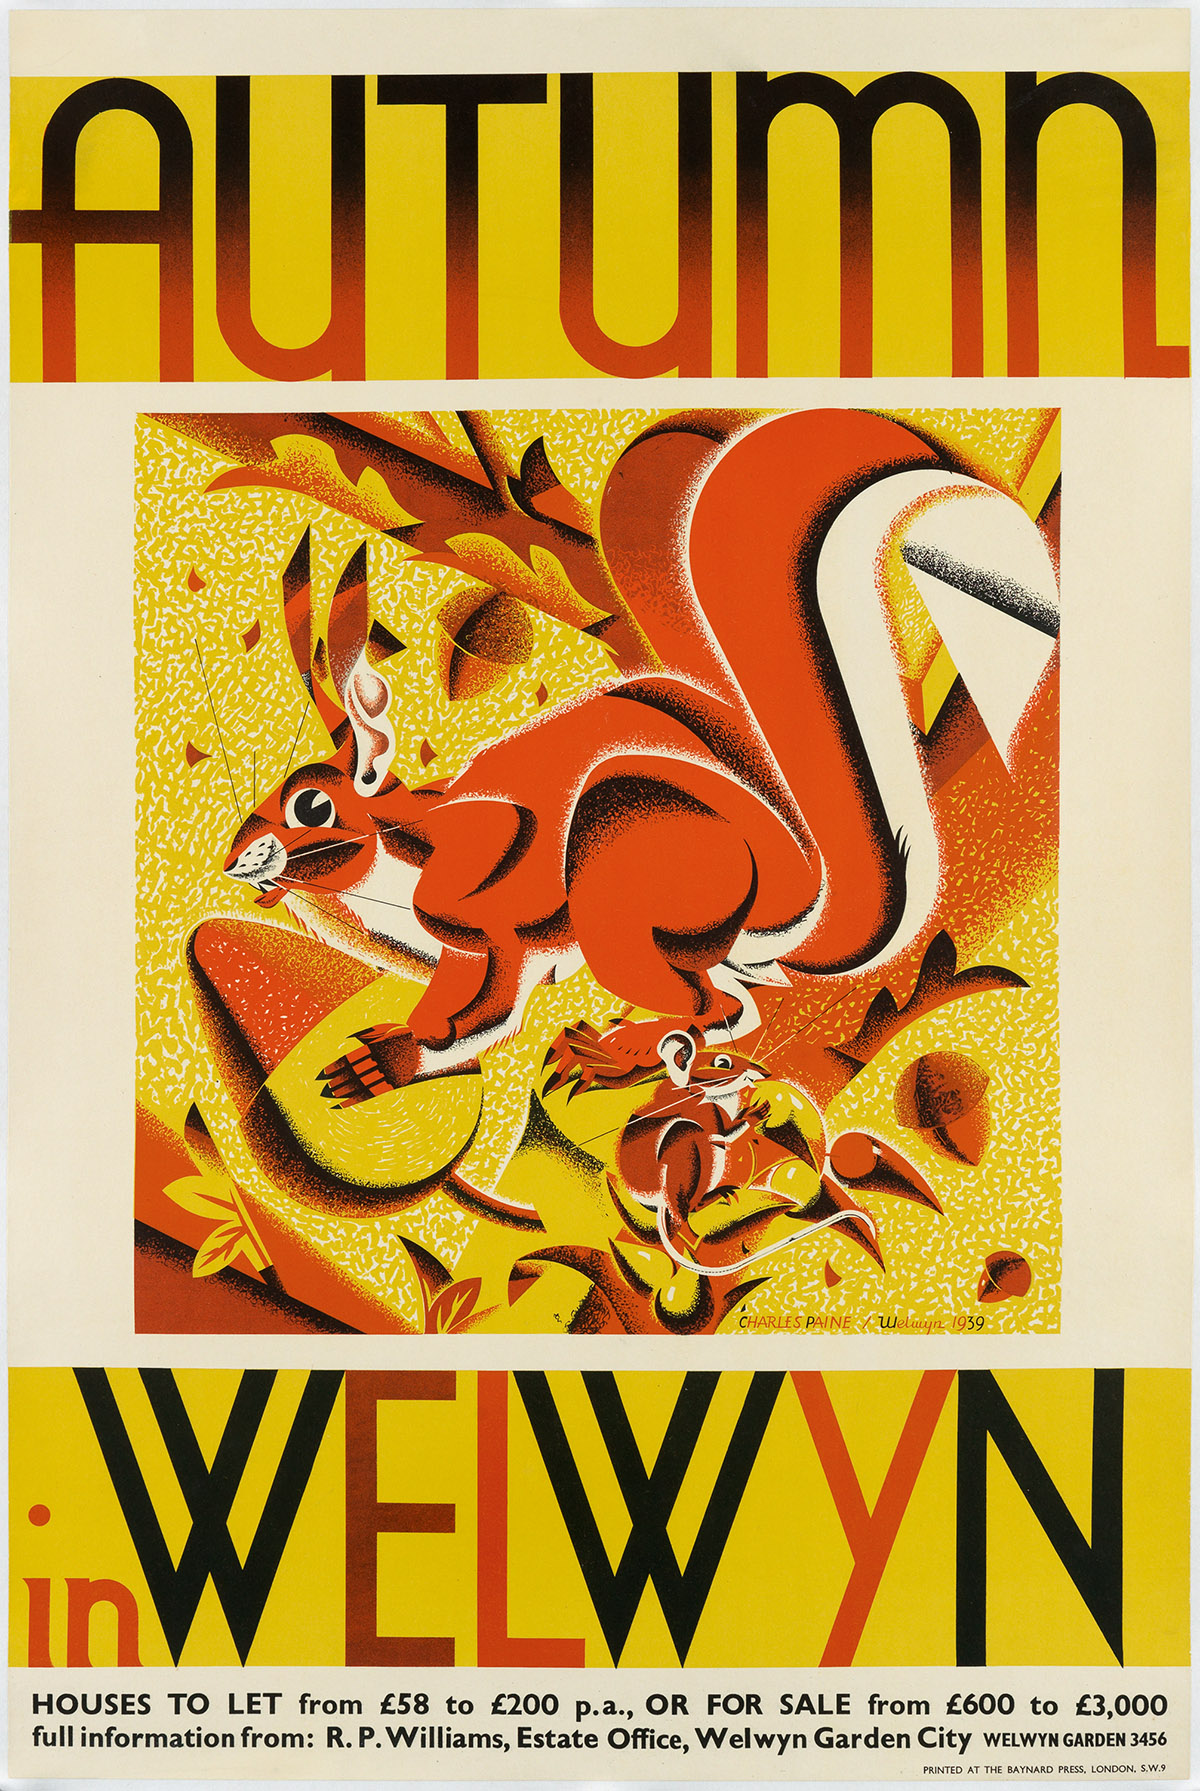 CHARLES-PAINE-(1895-1967)-AUTUMN-IN-WELWYN-1939-29x19-inches